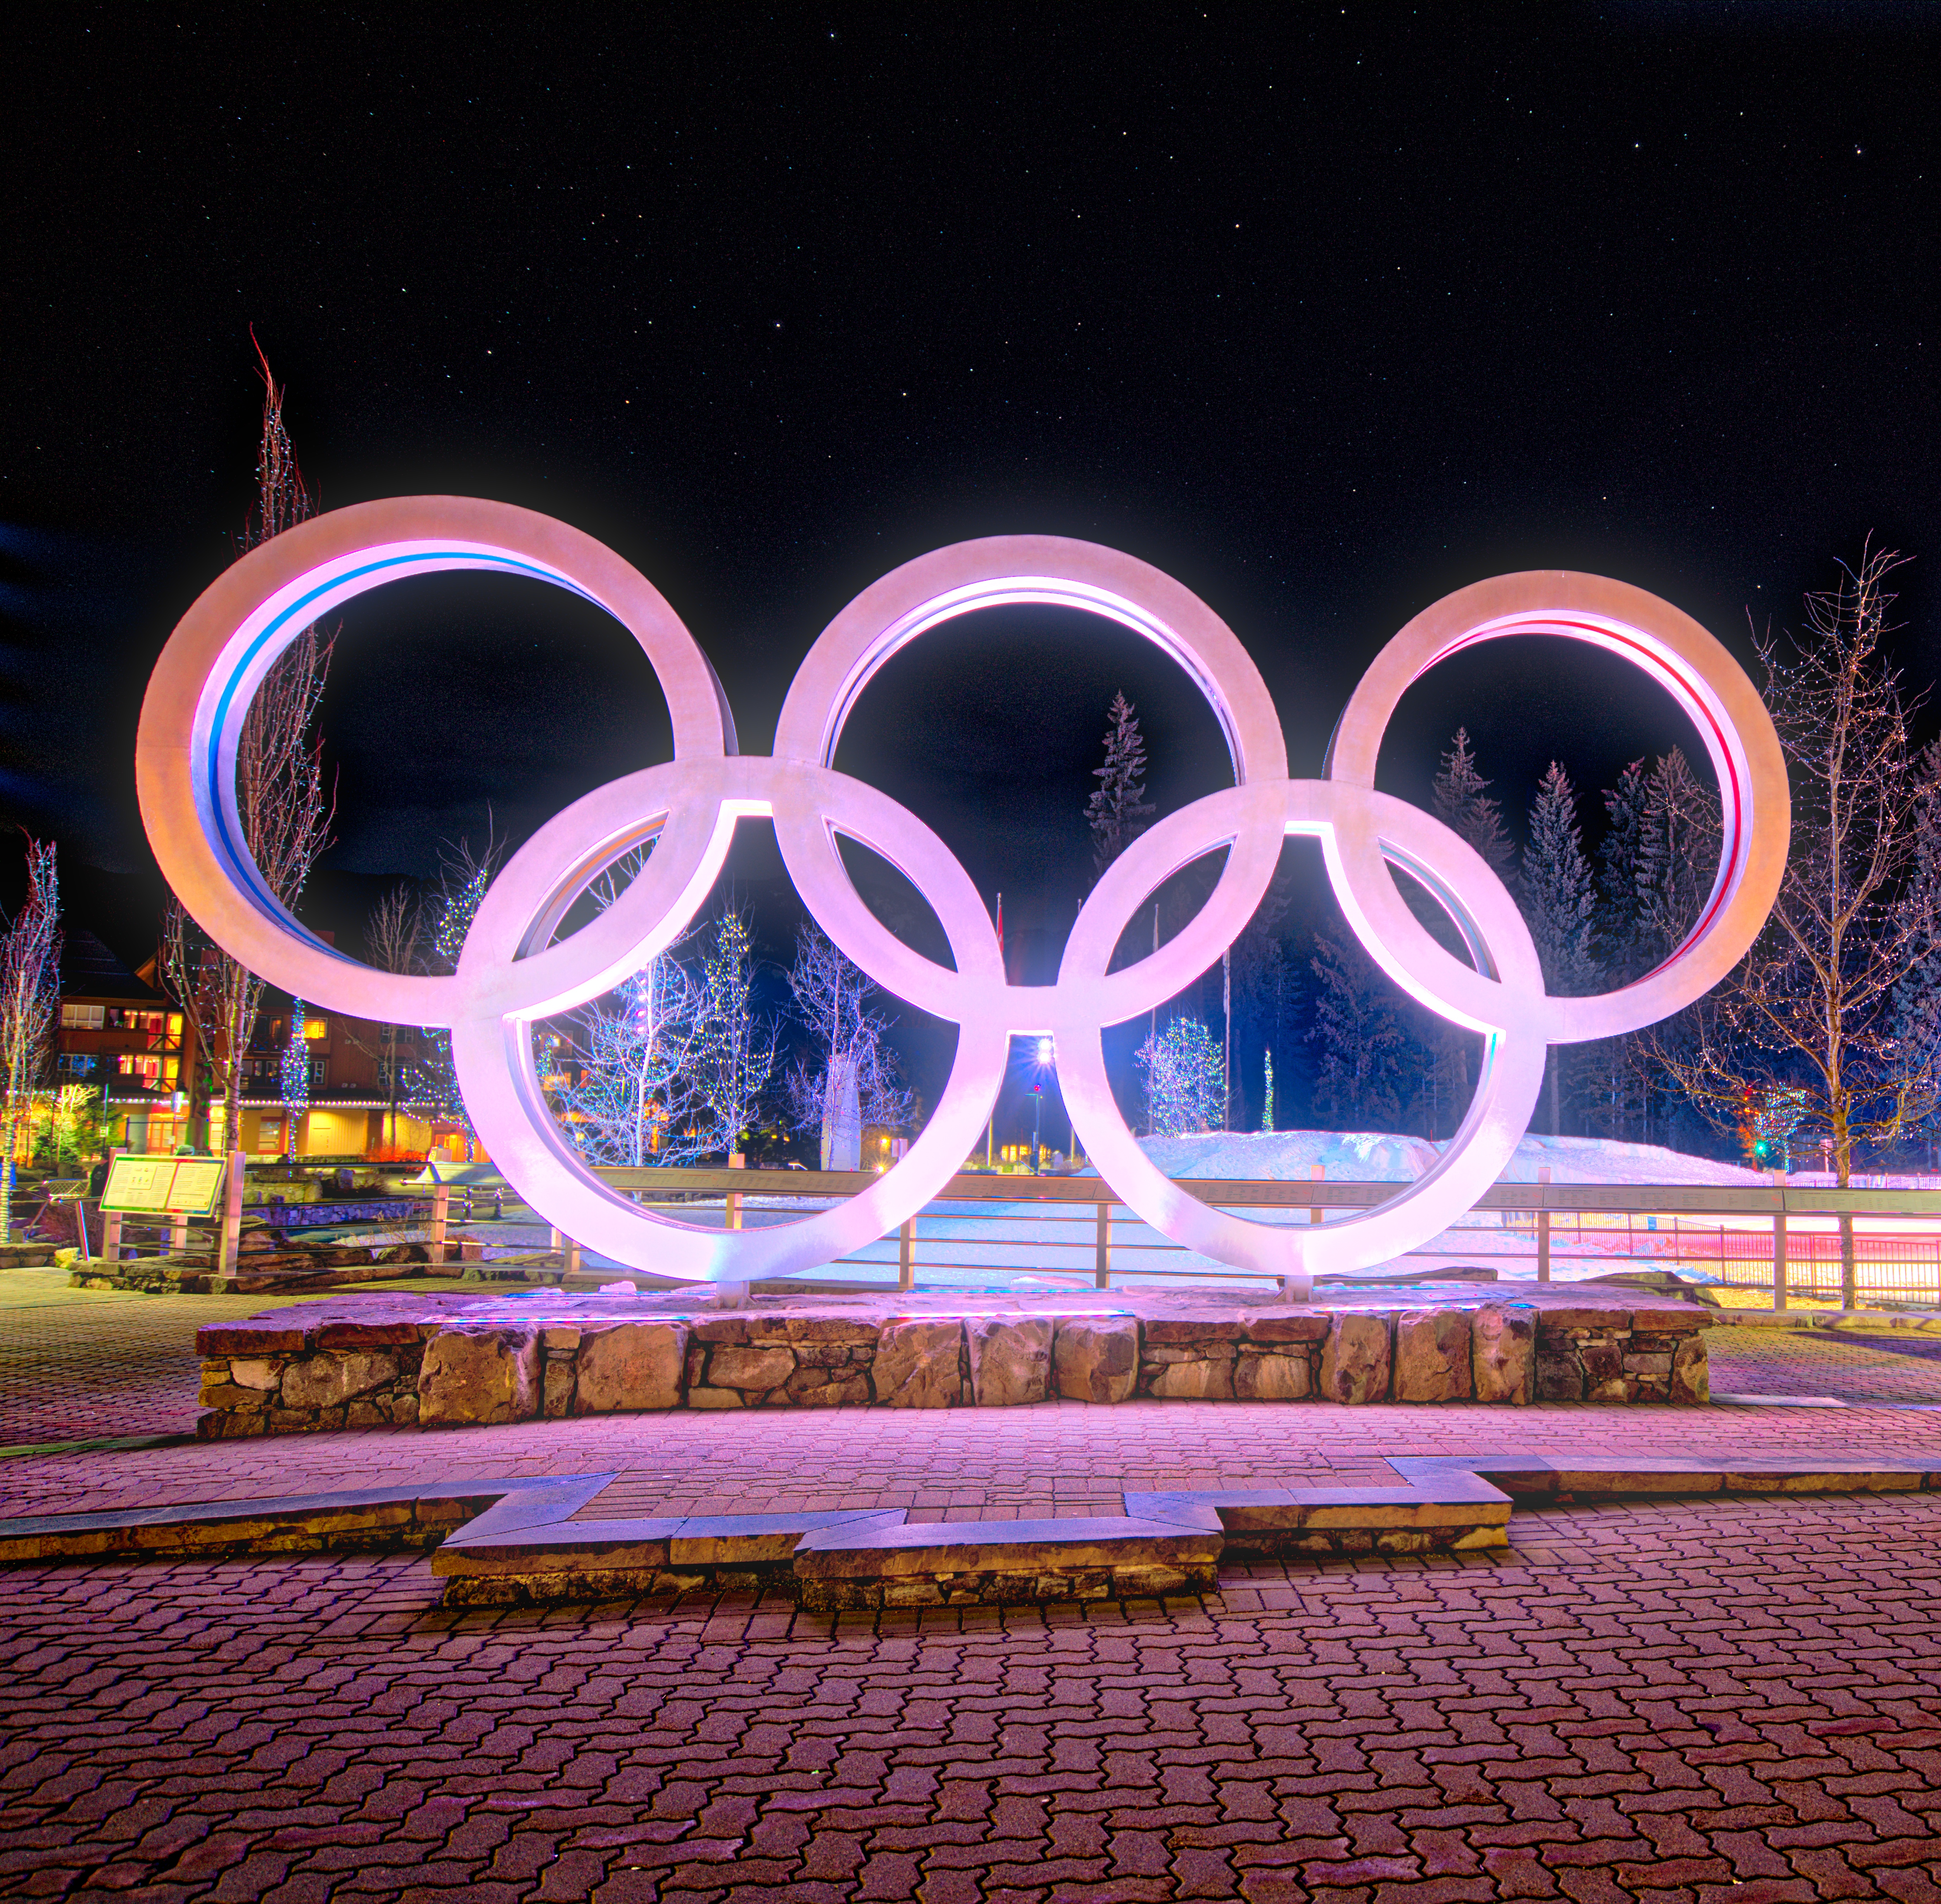 Whistler Olympic Rings, A7r, HDR, Night, Olympic, HQ Photo